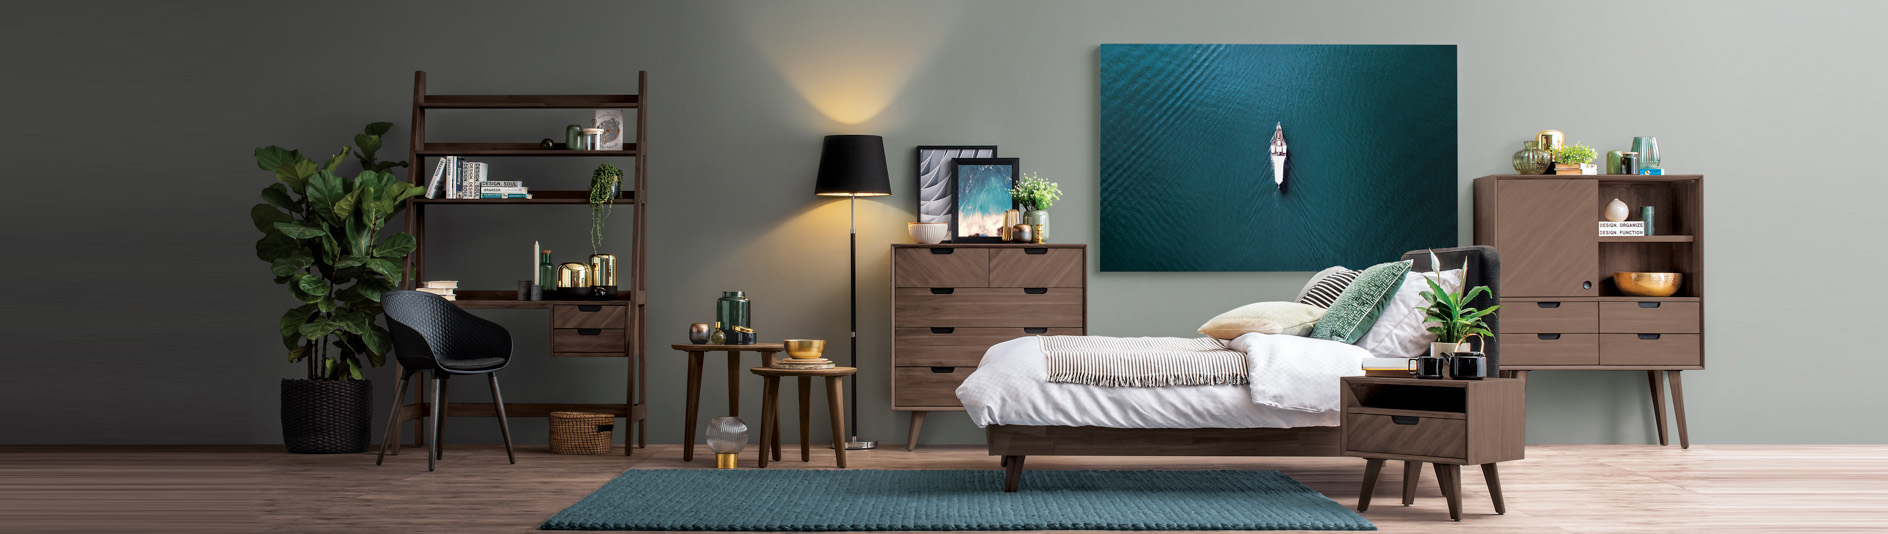 Warm Bed Room Inspiration In 2020 Furniture Scandinavian Style Furniture Scandinavian Style Bedroom